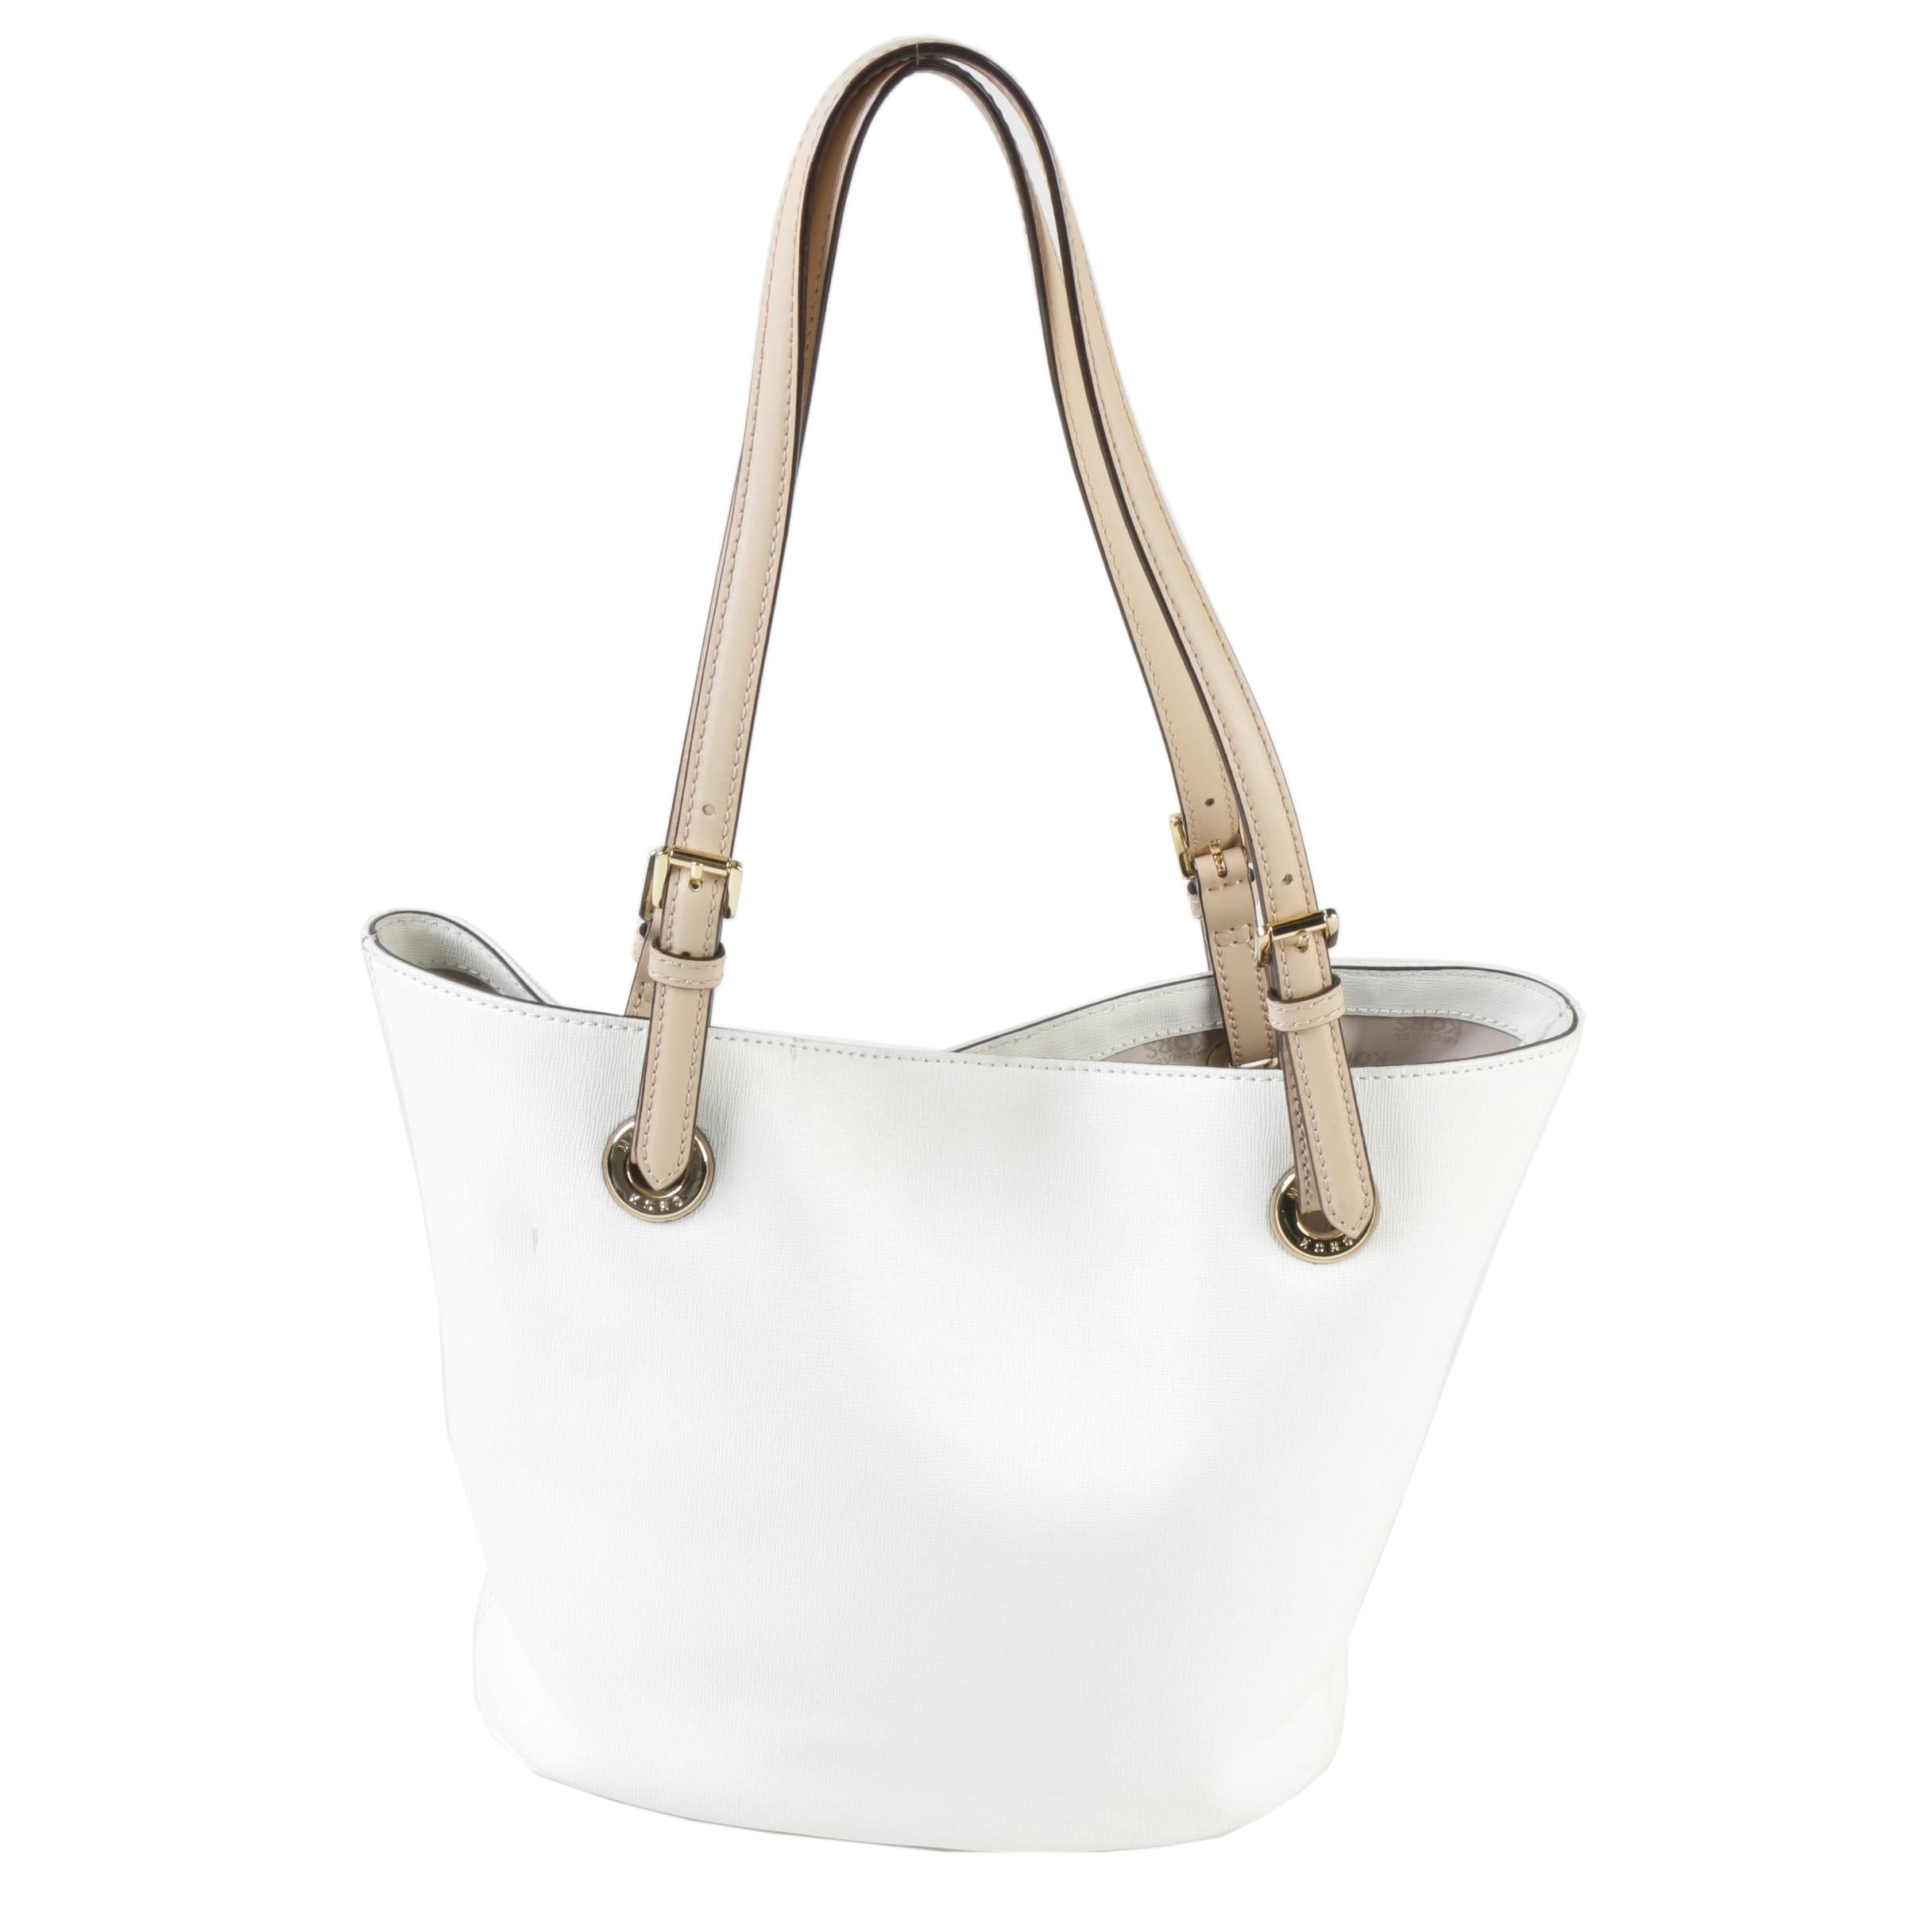 MICHAEL Michael Kors White Saffiano Leather Shoulder Bag